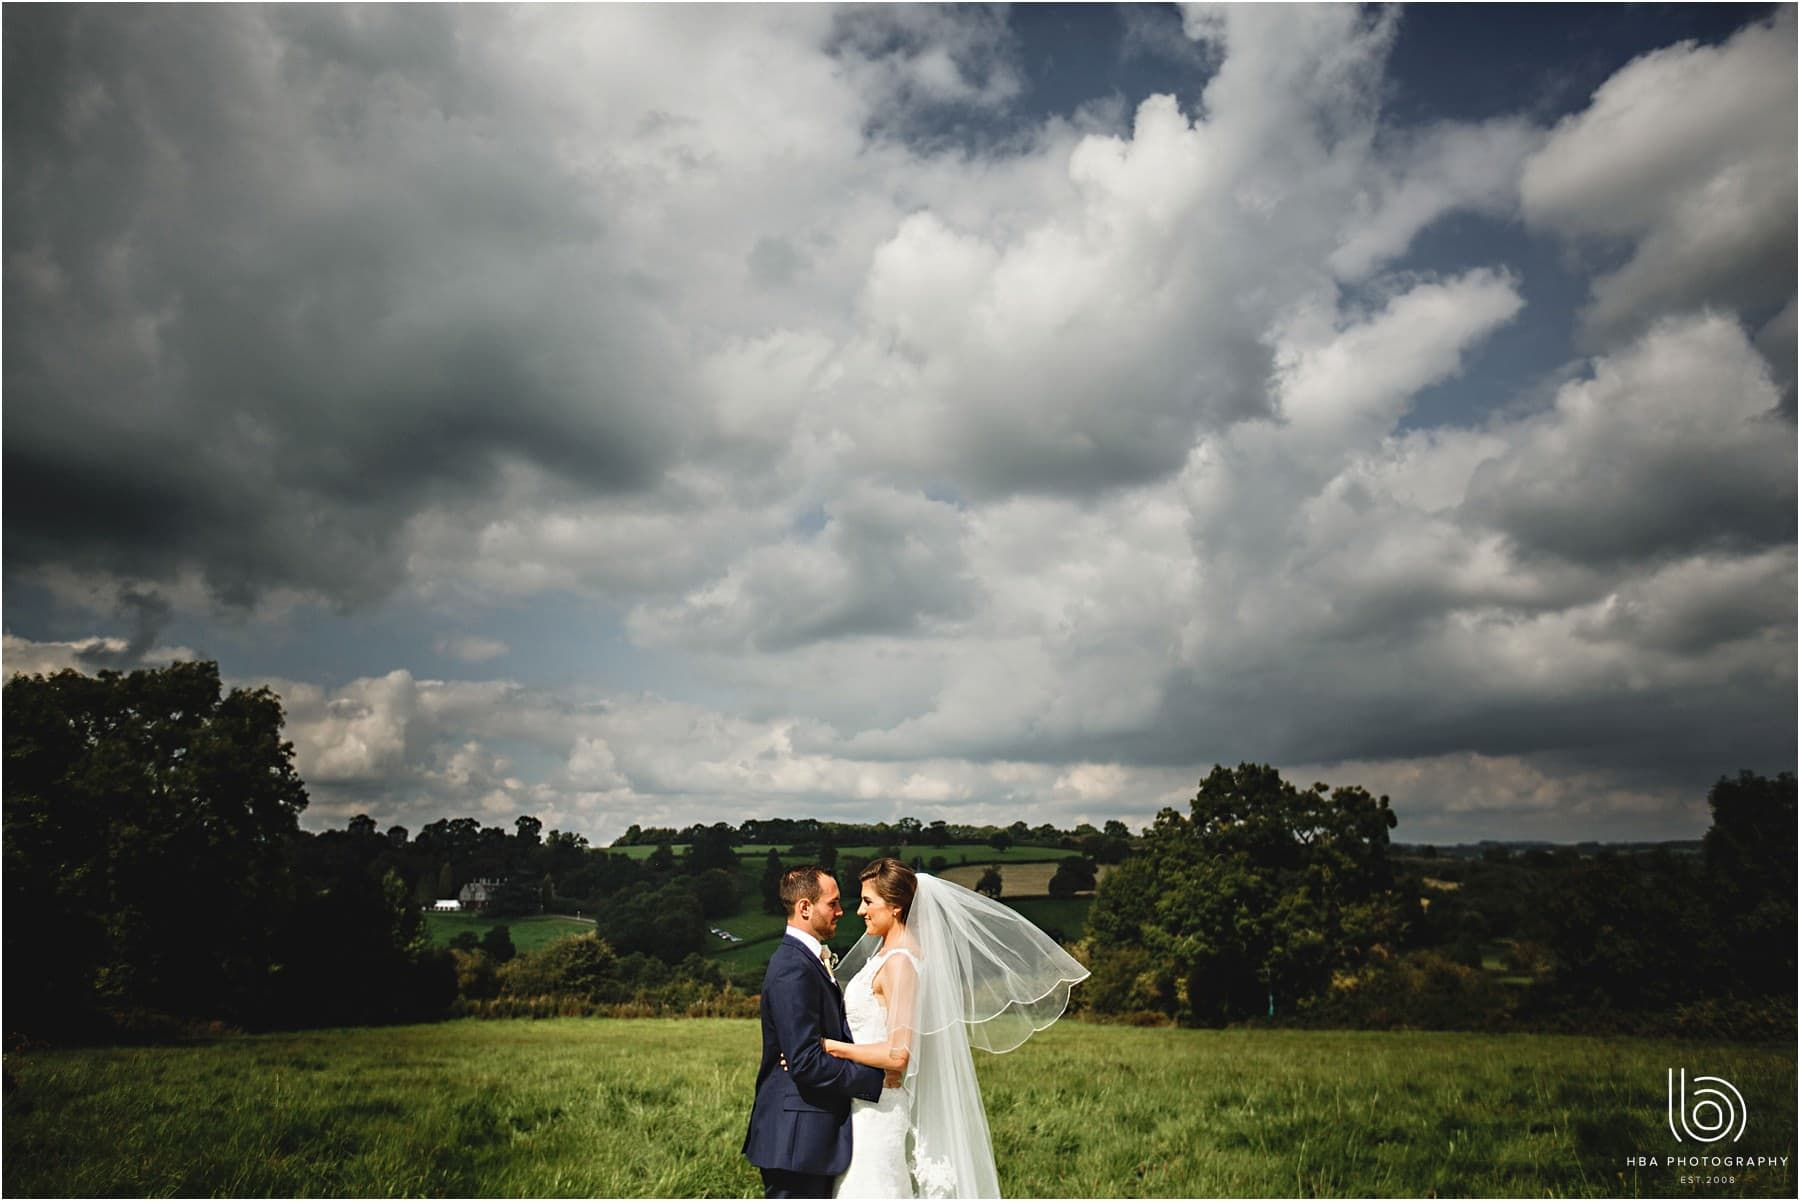 the bride & groom at home with a beautiful view in the background